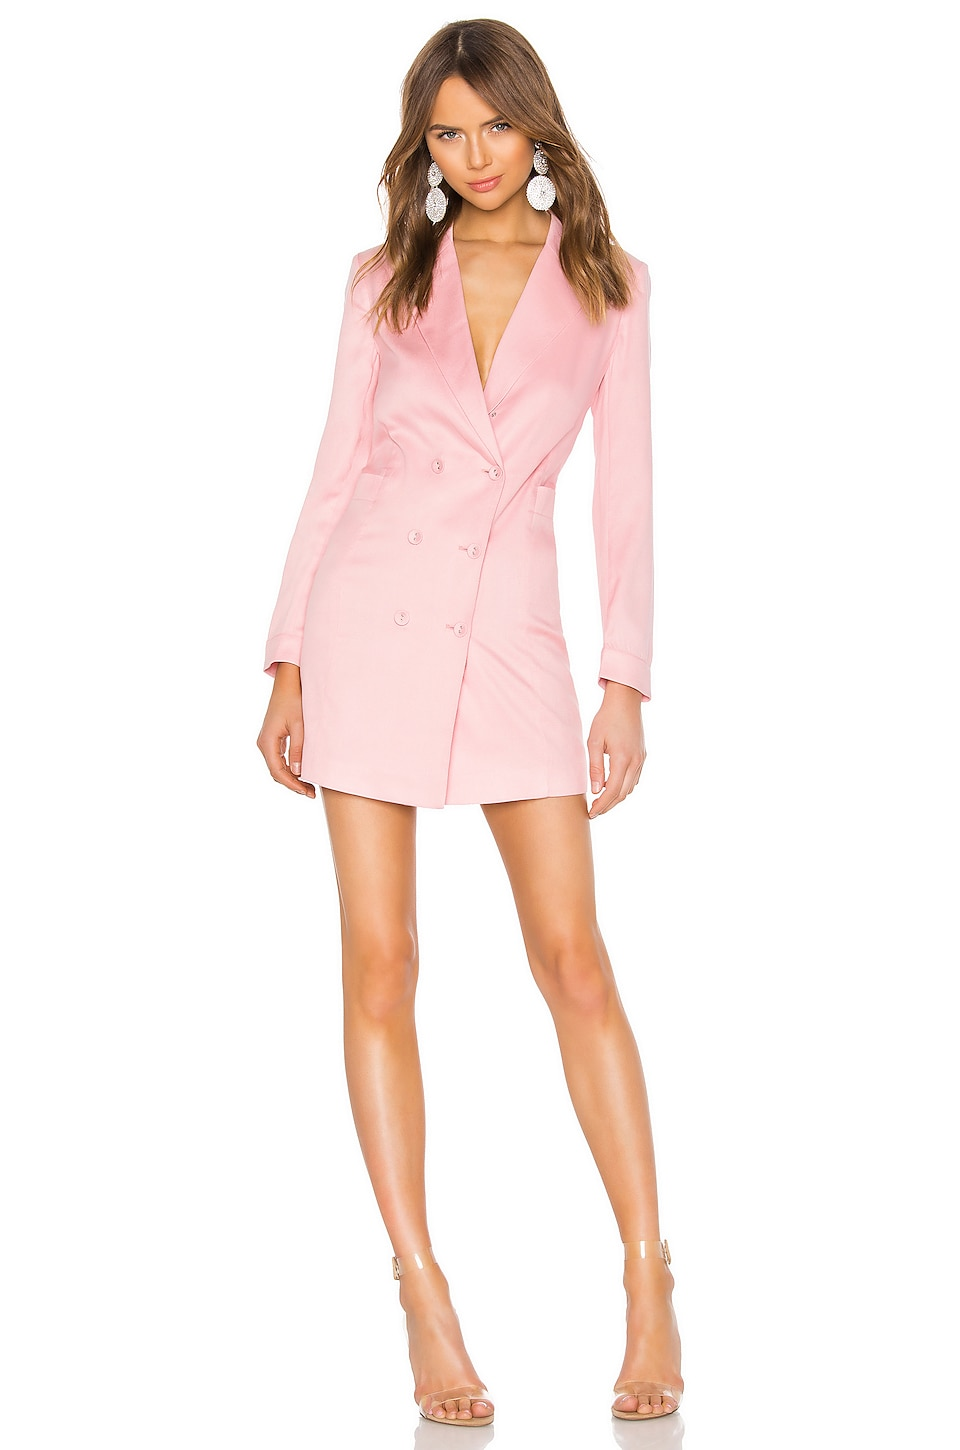 fleur du mal Double Breasted Blazer Dress in Coral Blush